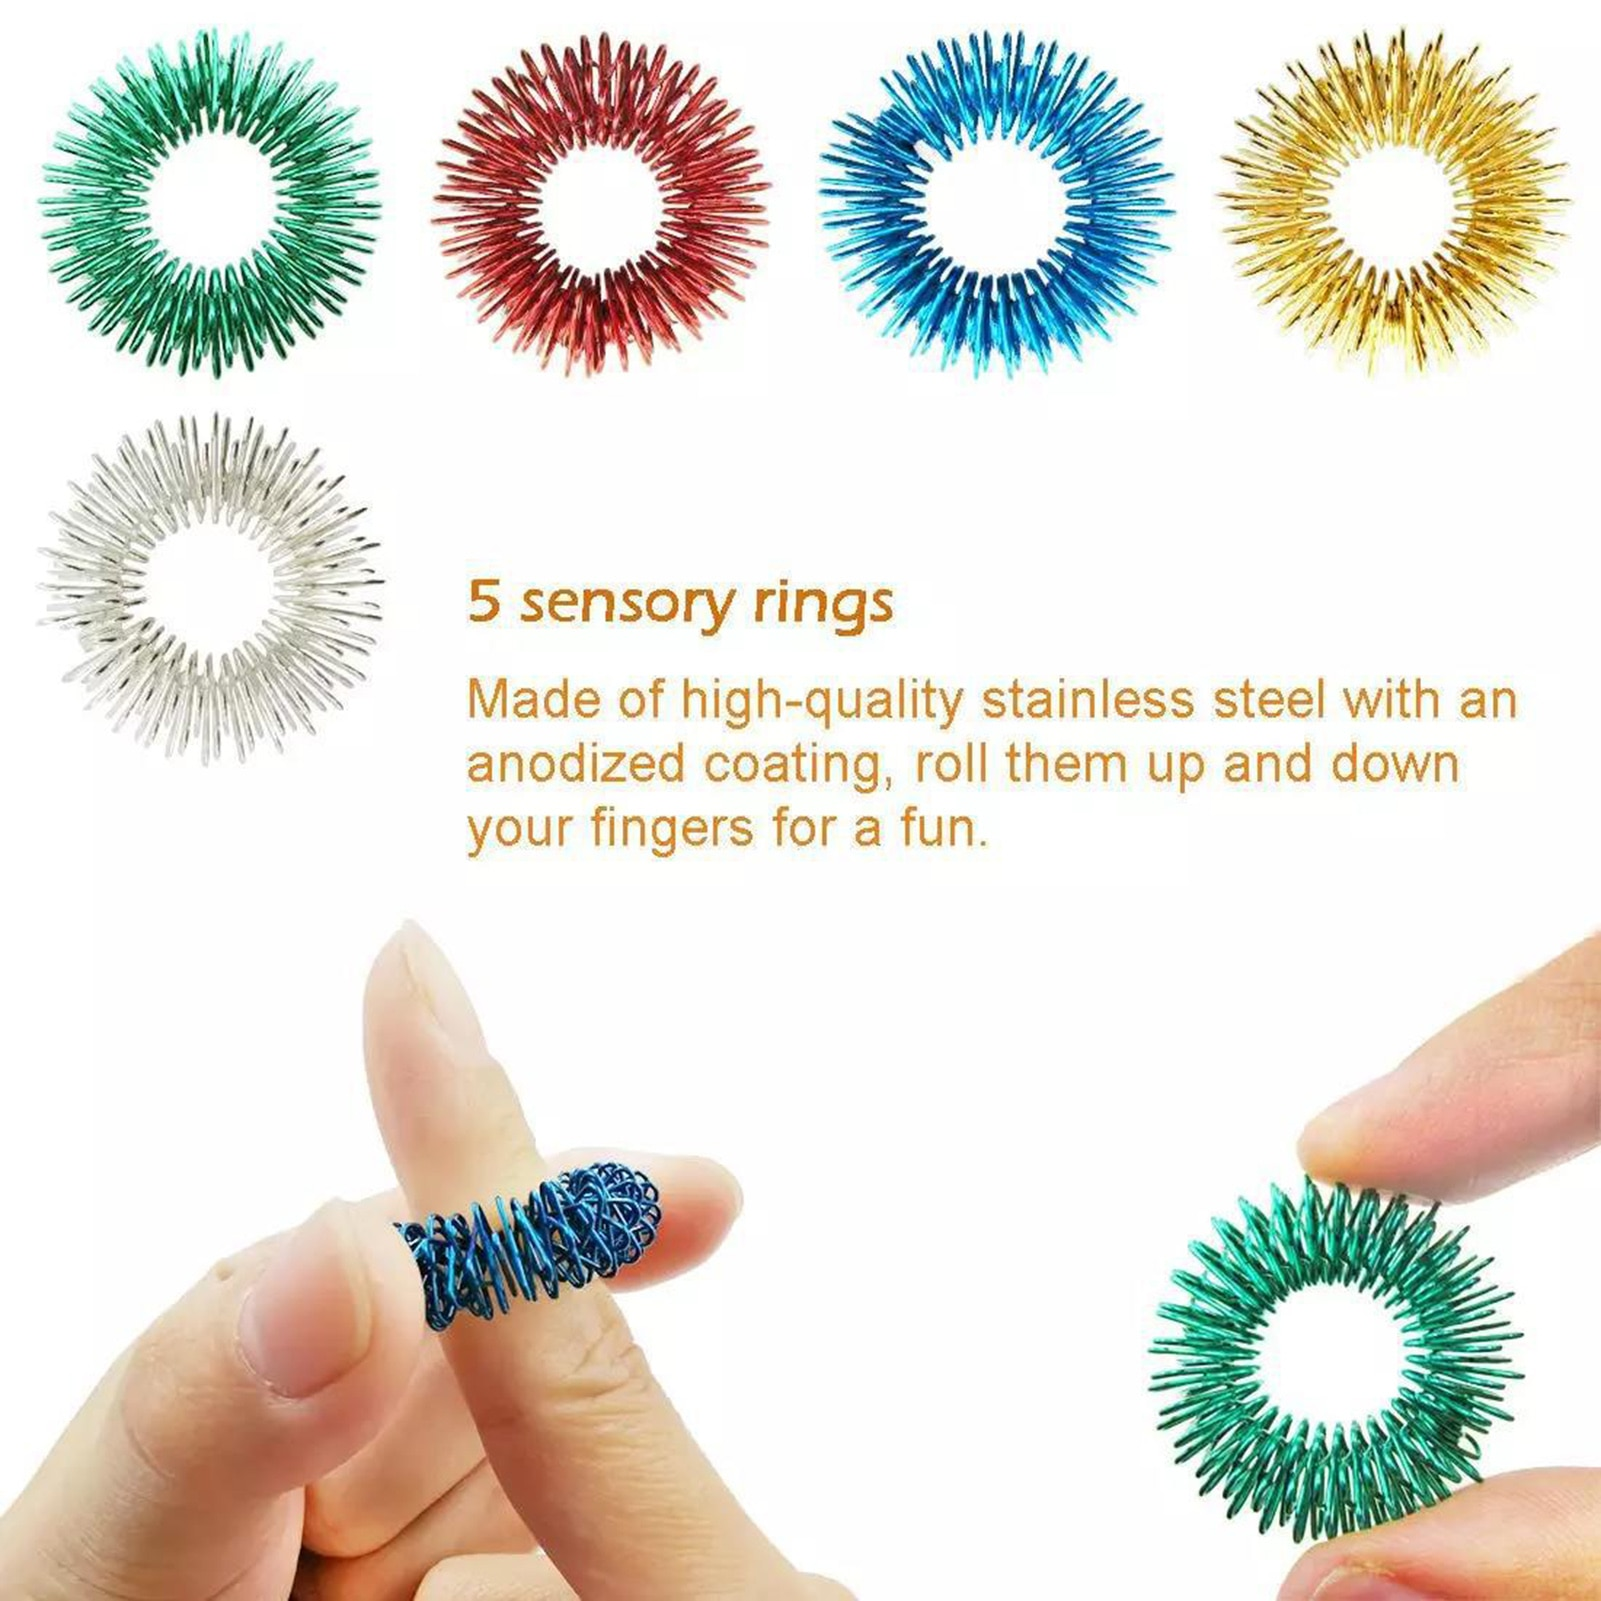 21 Pack Fidget Sensory Toy Set Stress Relief Toys Autism Anxiety Relief Stress Pop it Bubble Fidget Sensory Toy For Kids Adults enlarge